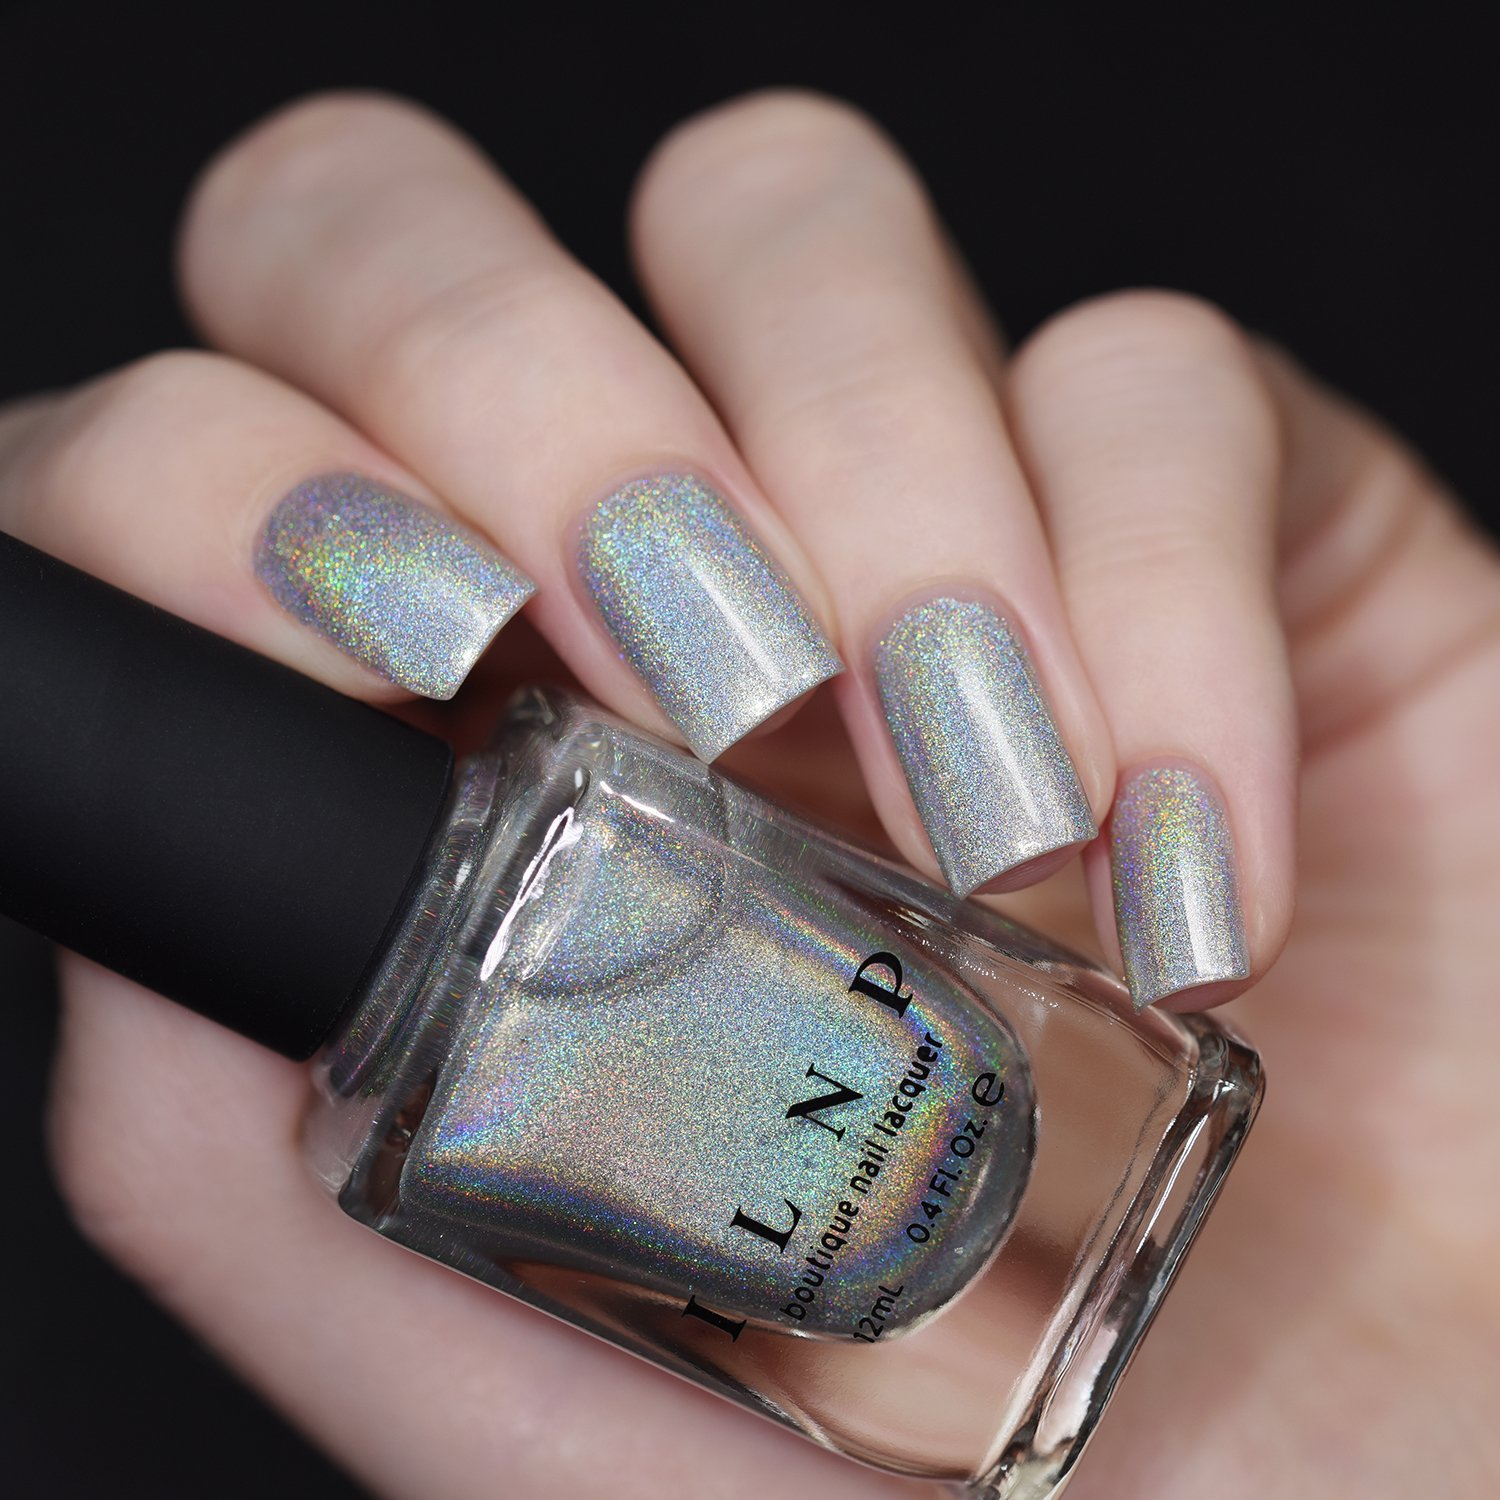 Amazon.com : ILNP MEGA - 100% PURE Ultra Holographic Nail Polish ...